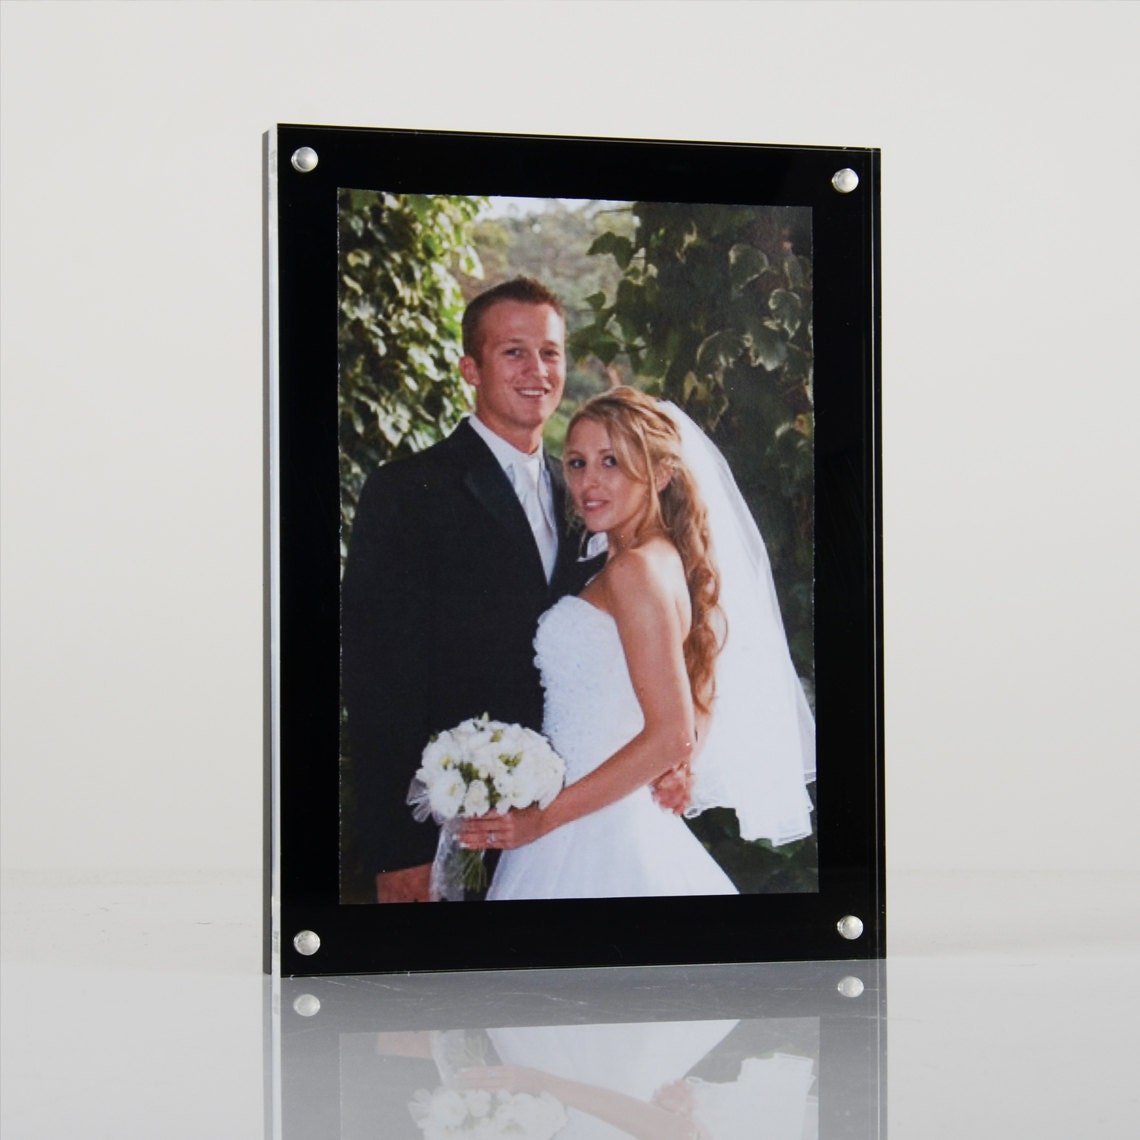 Acrylic magnetic perspex picture frame photo frame sign holder sold by luminatiltd jeuxipadfo Image collections